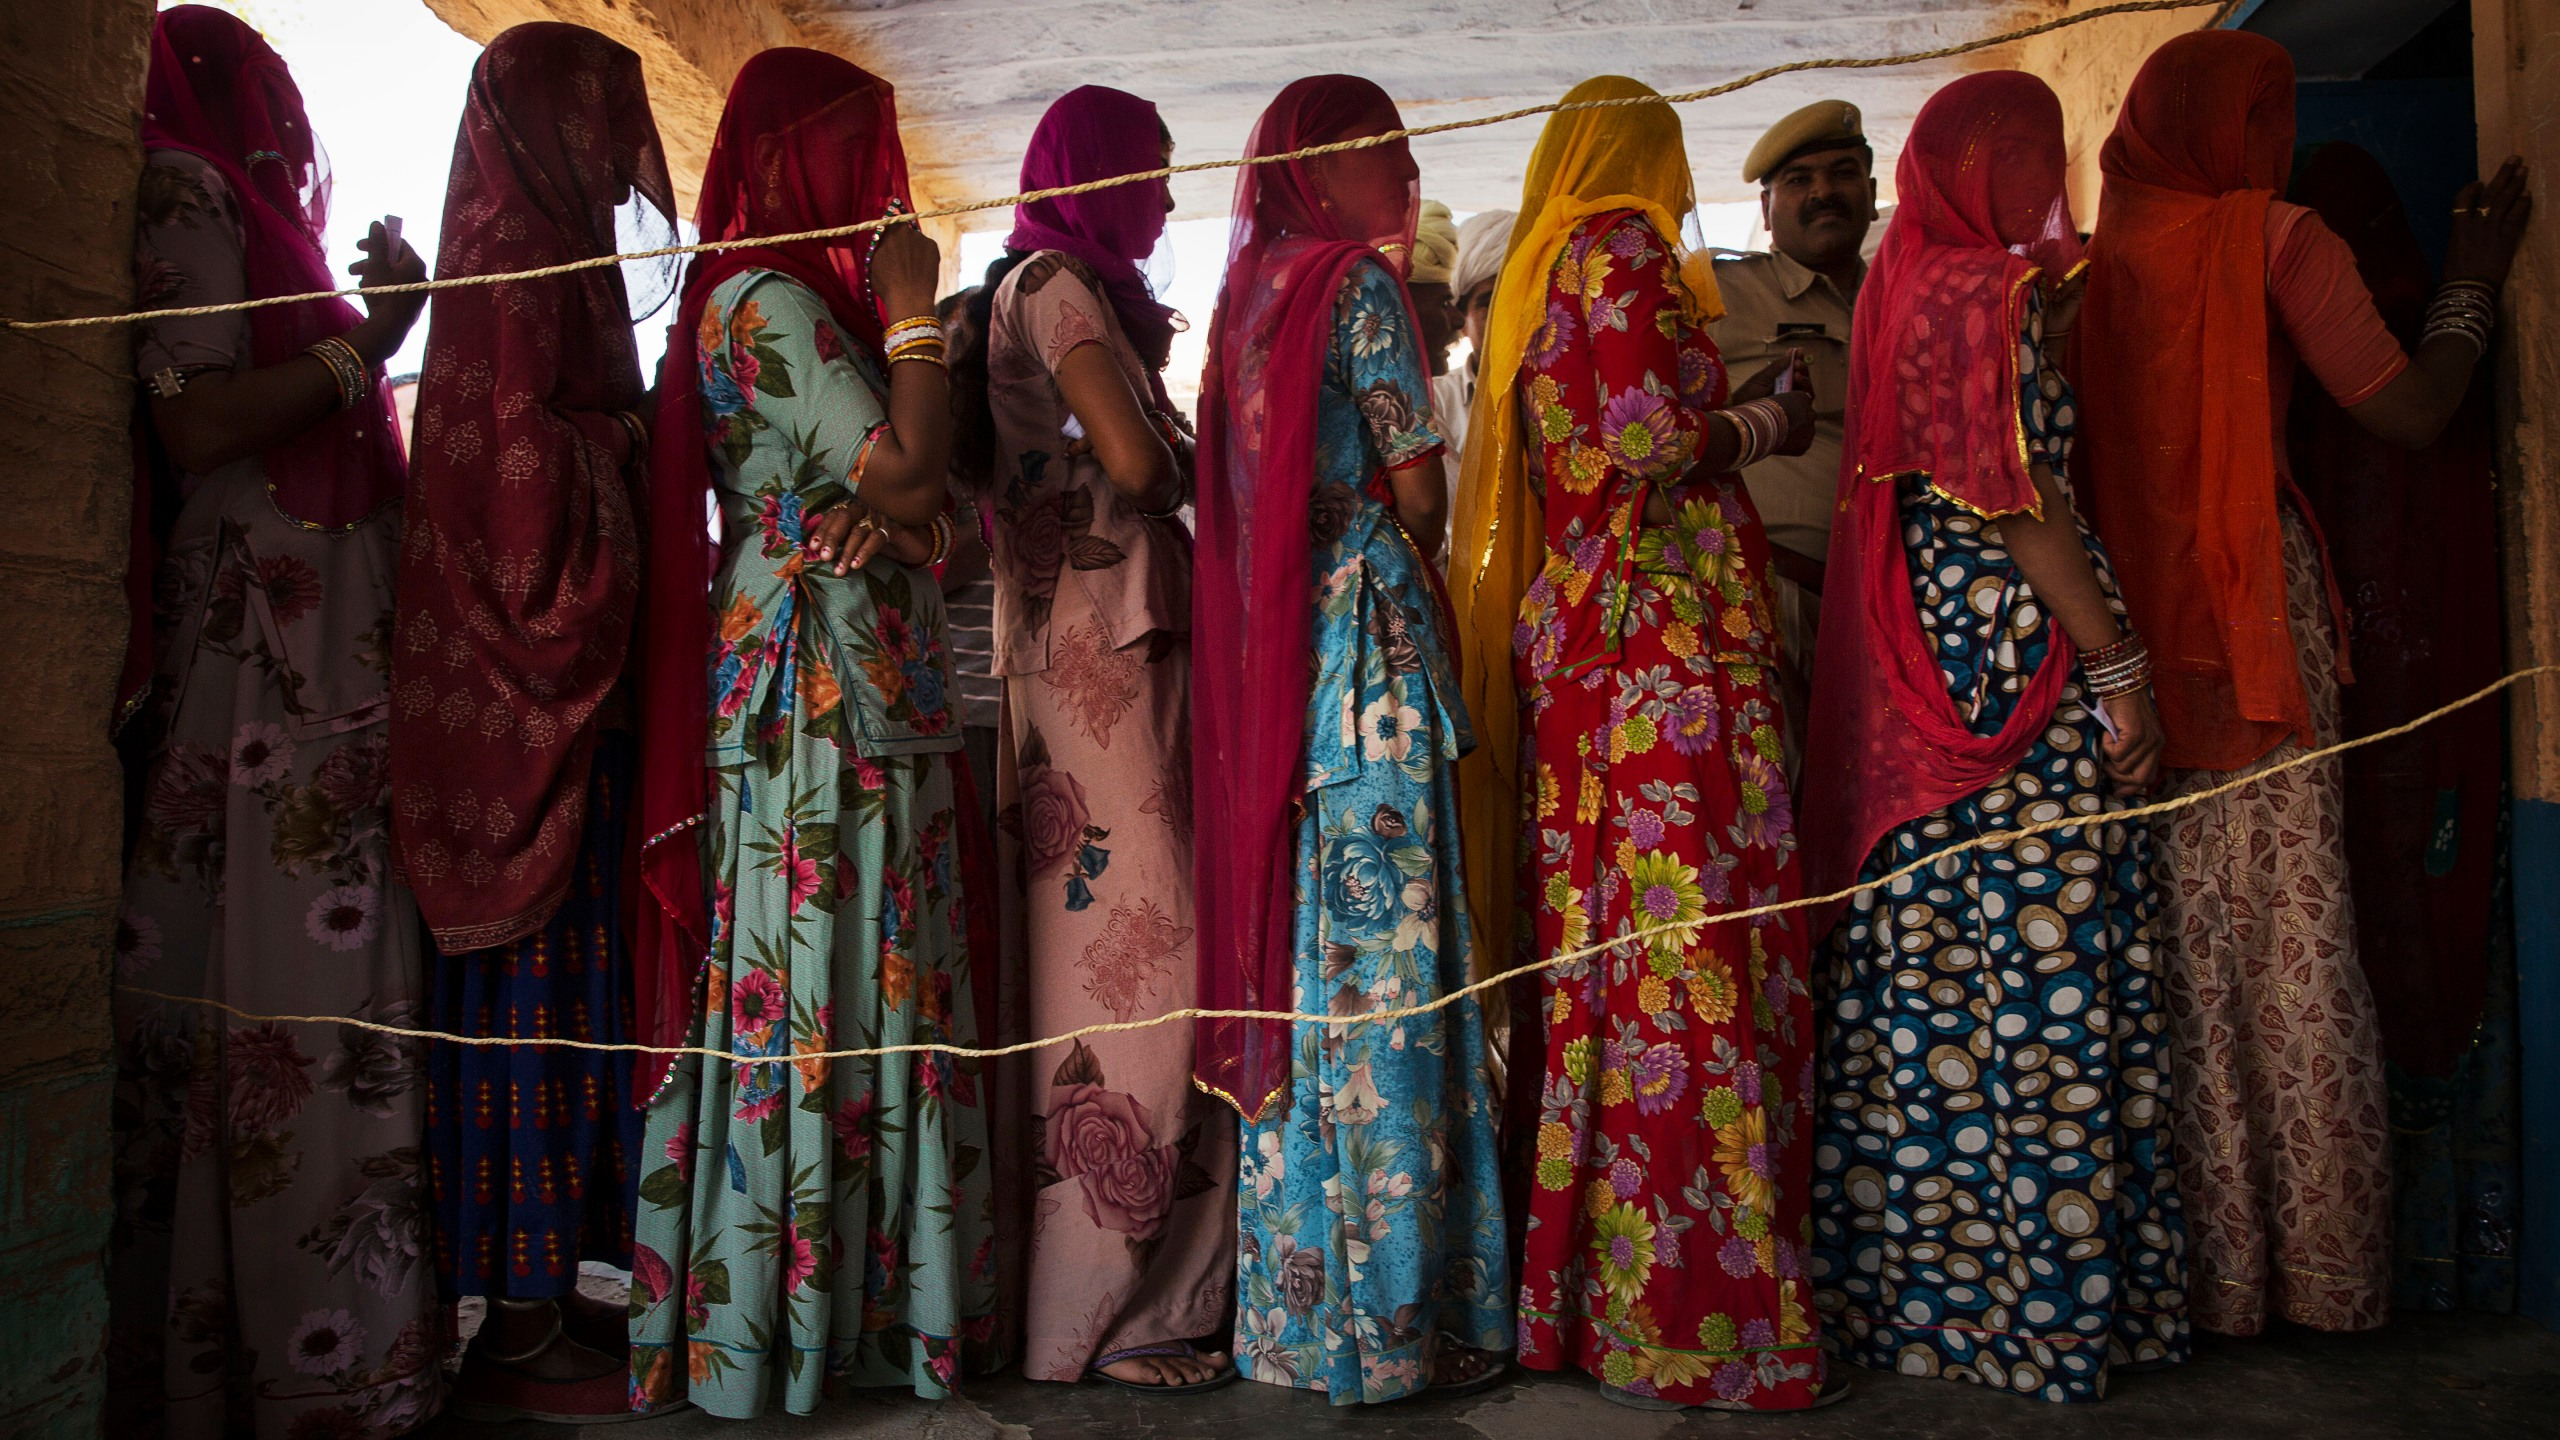 Indian women wait to vote at a polling station in the Jodhpur District in the desert state of Rajasthan, India, on April 17, 2014. (Credit: Kevin Frayer / Getty Images)